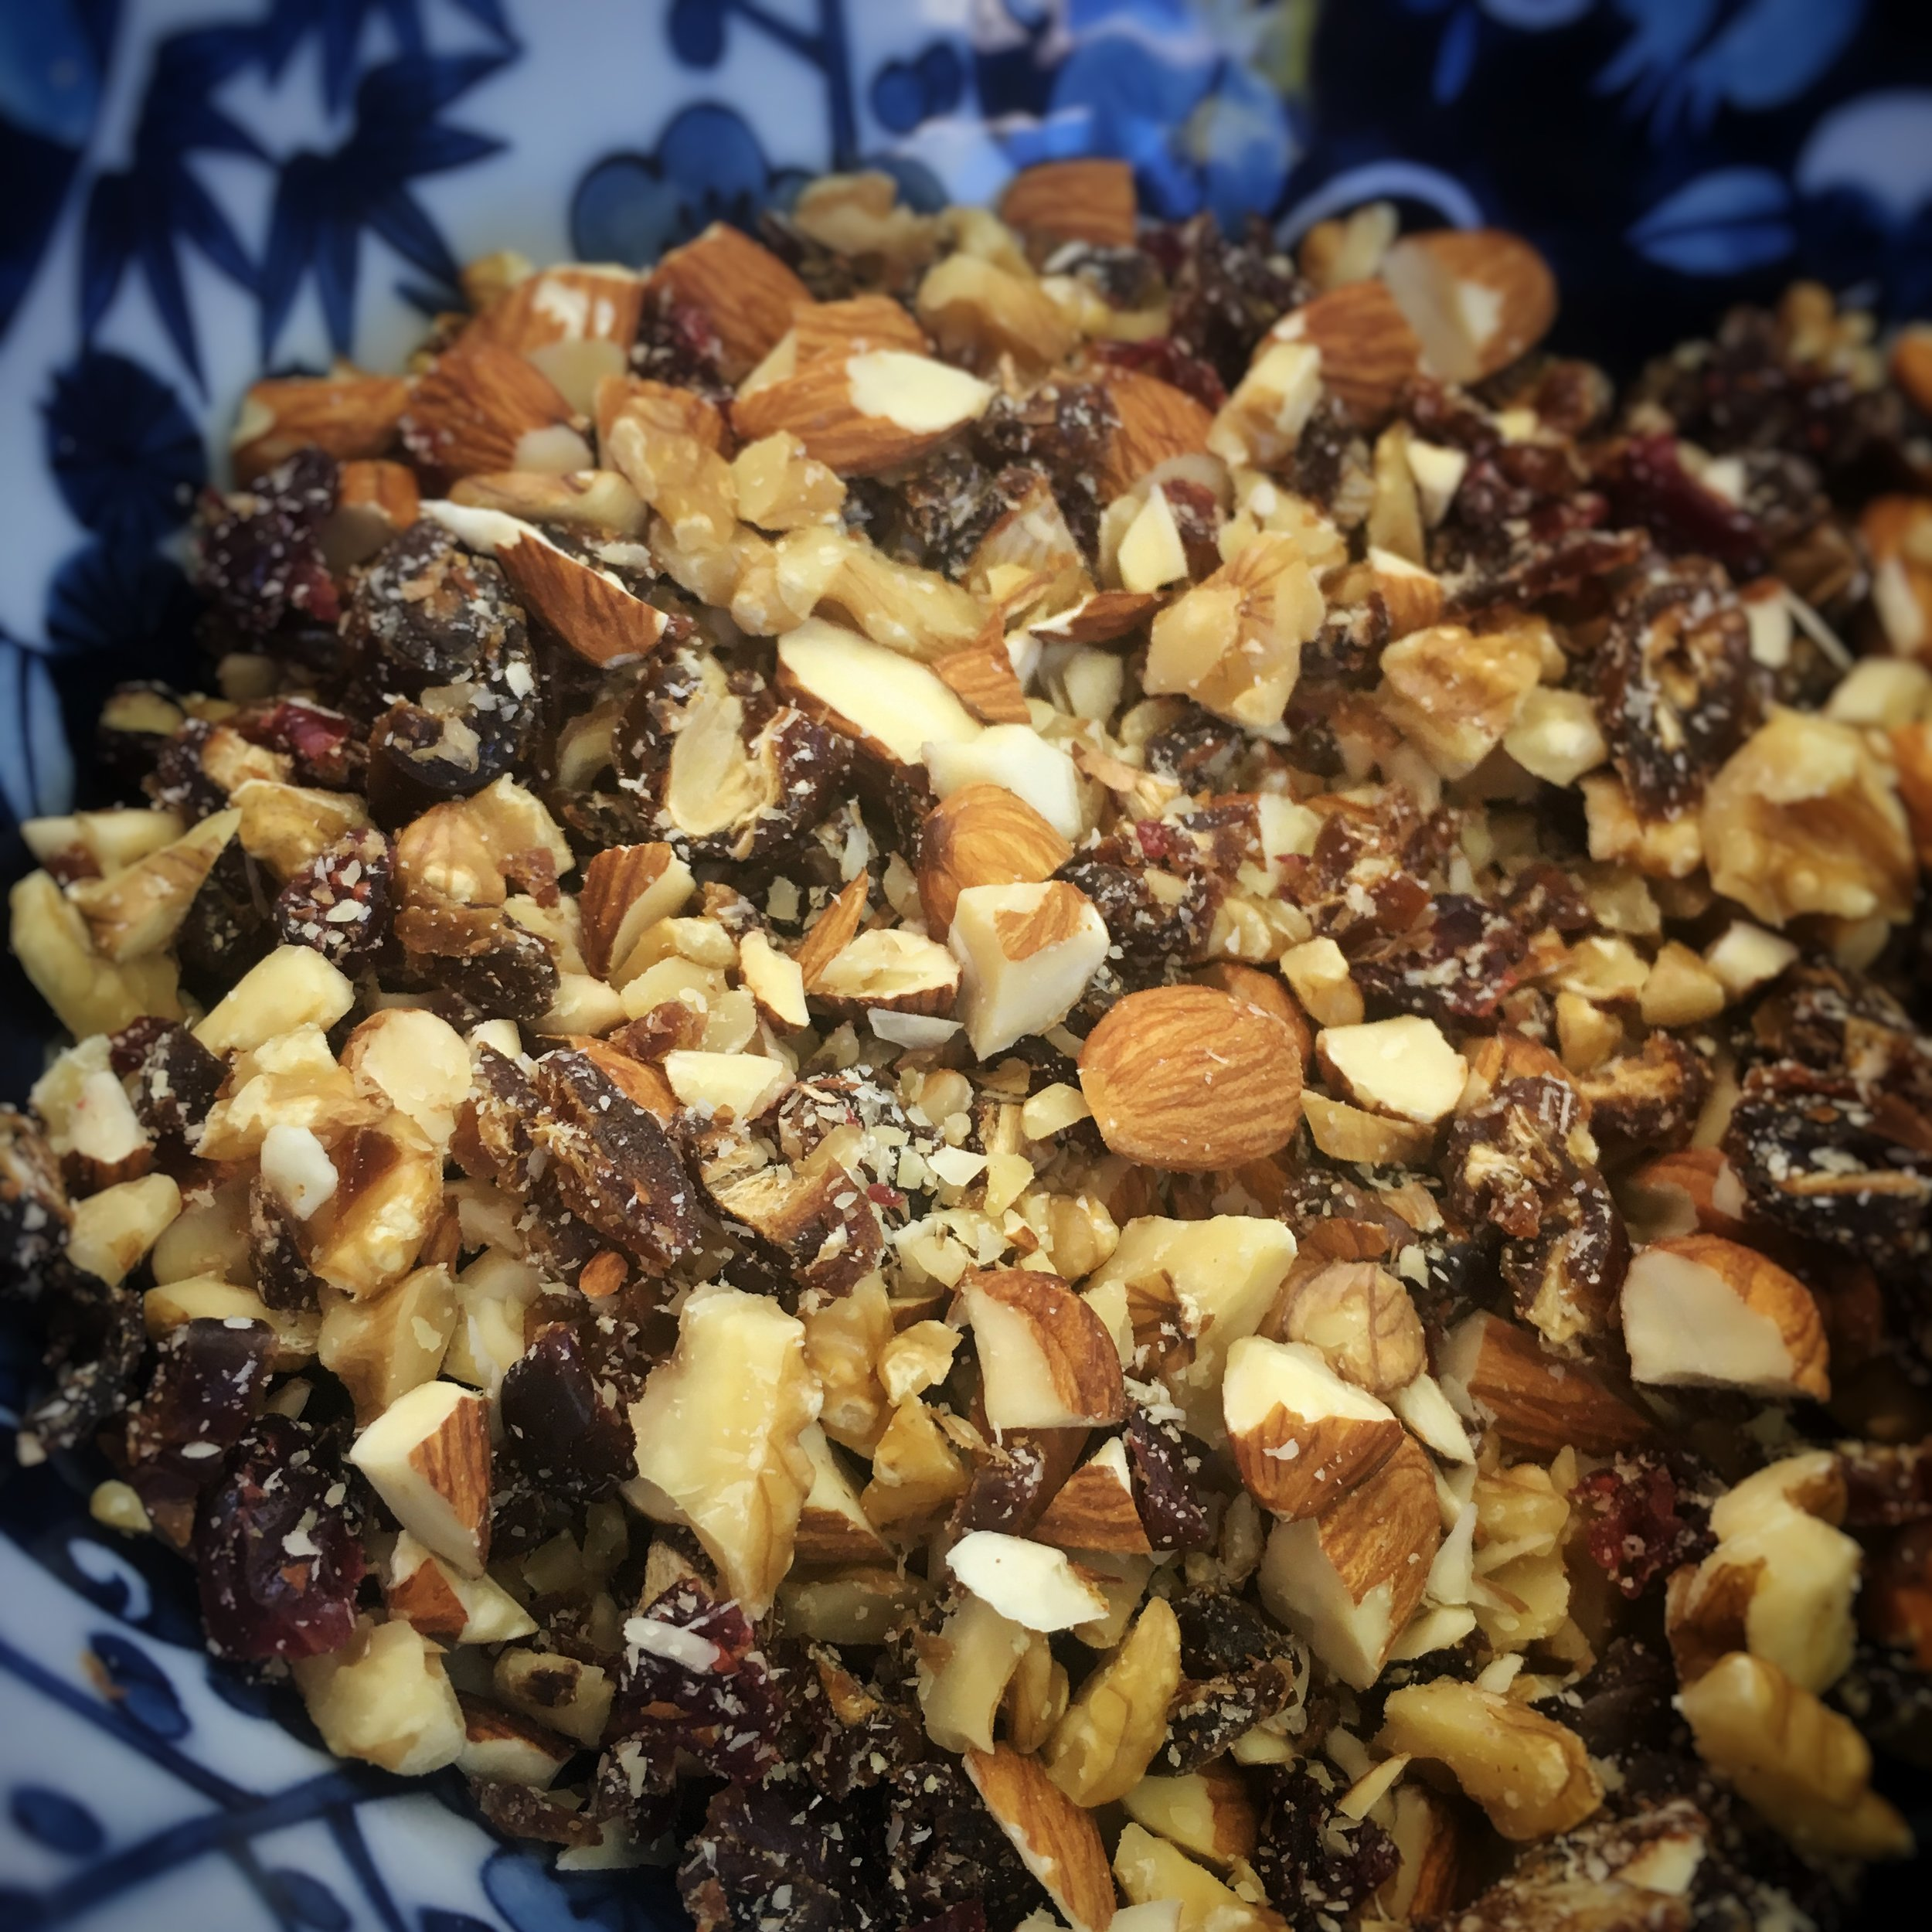 Roughly chop your fruit and nuts and mix them evenly in a bowl - Try not to eat this yummy deliciousness yet...